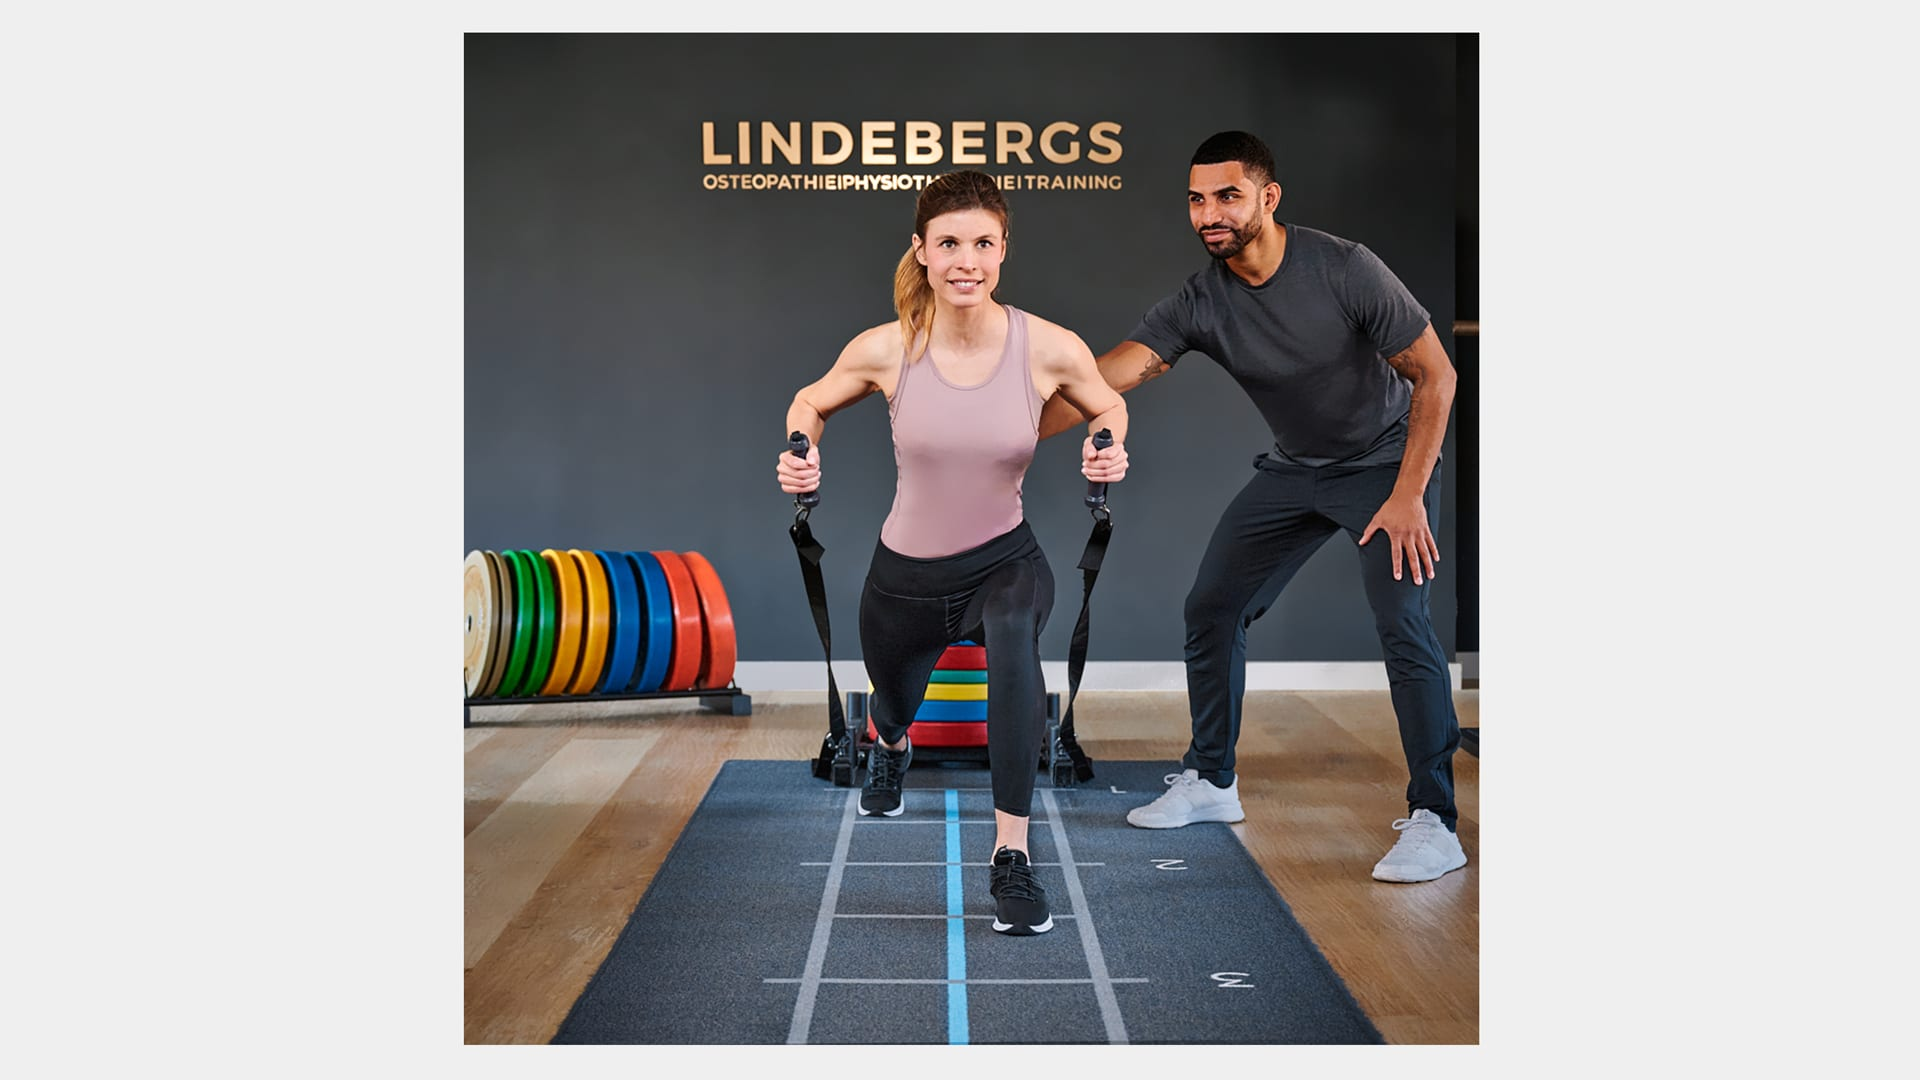 LINDEBERGS